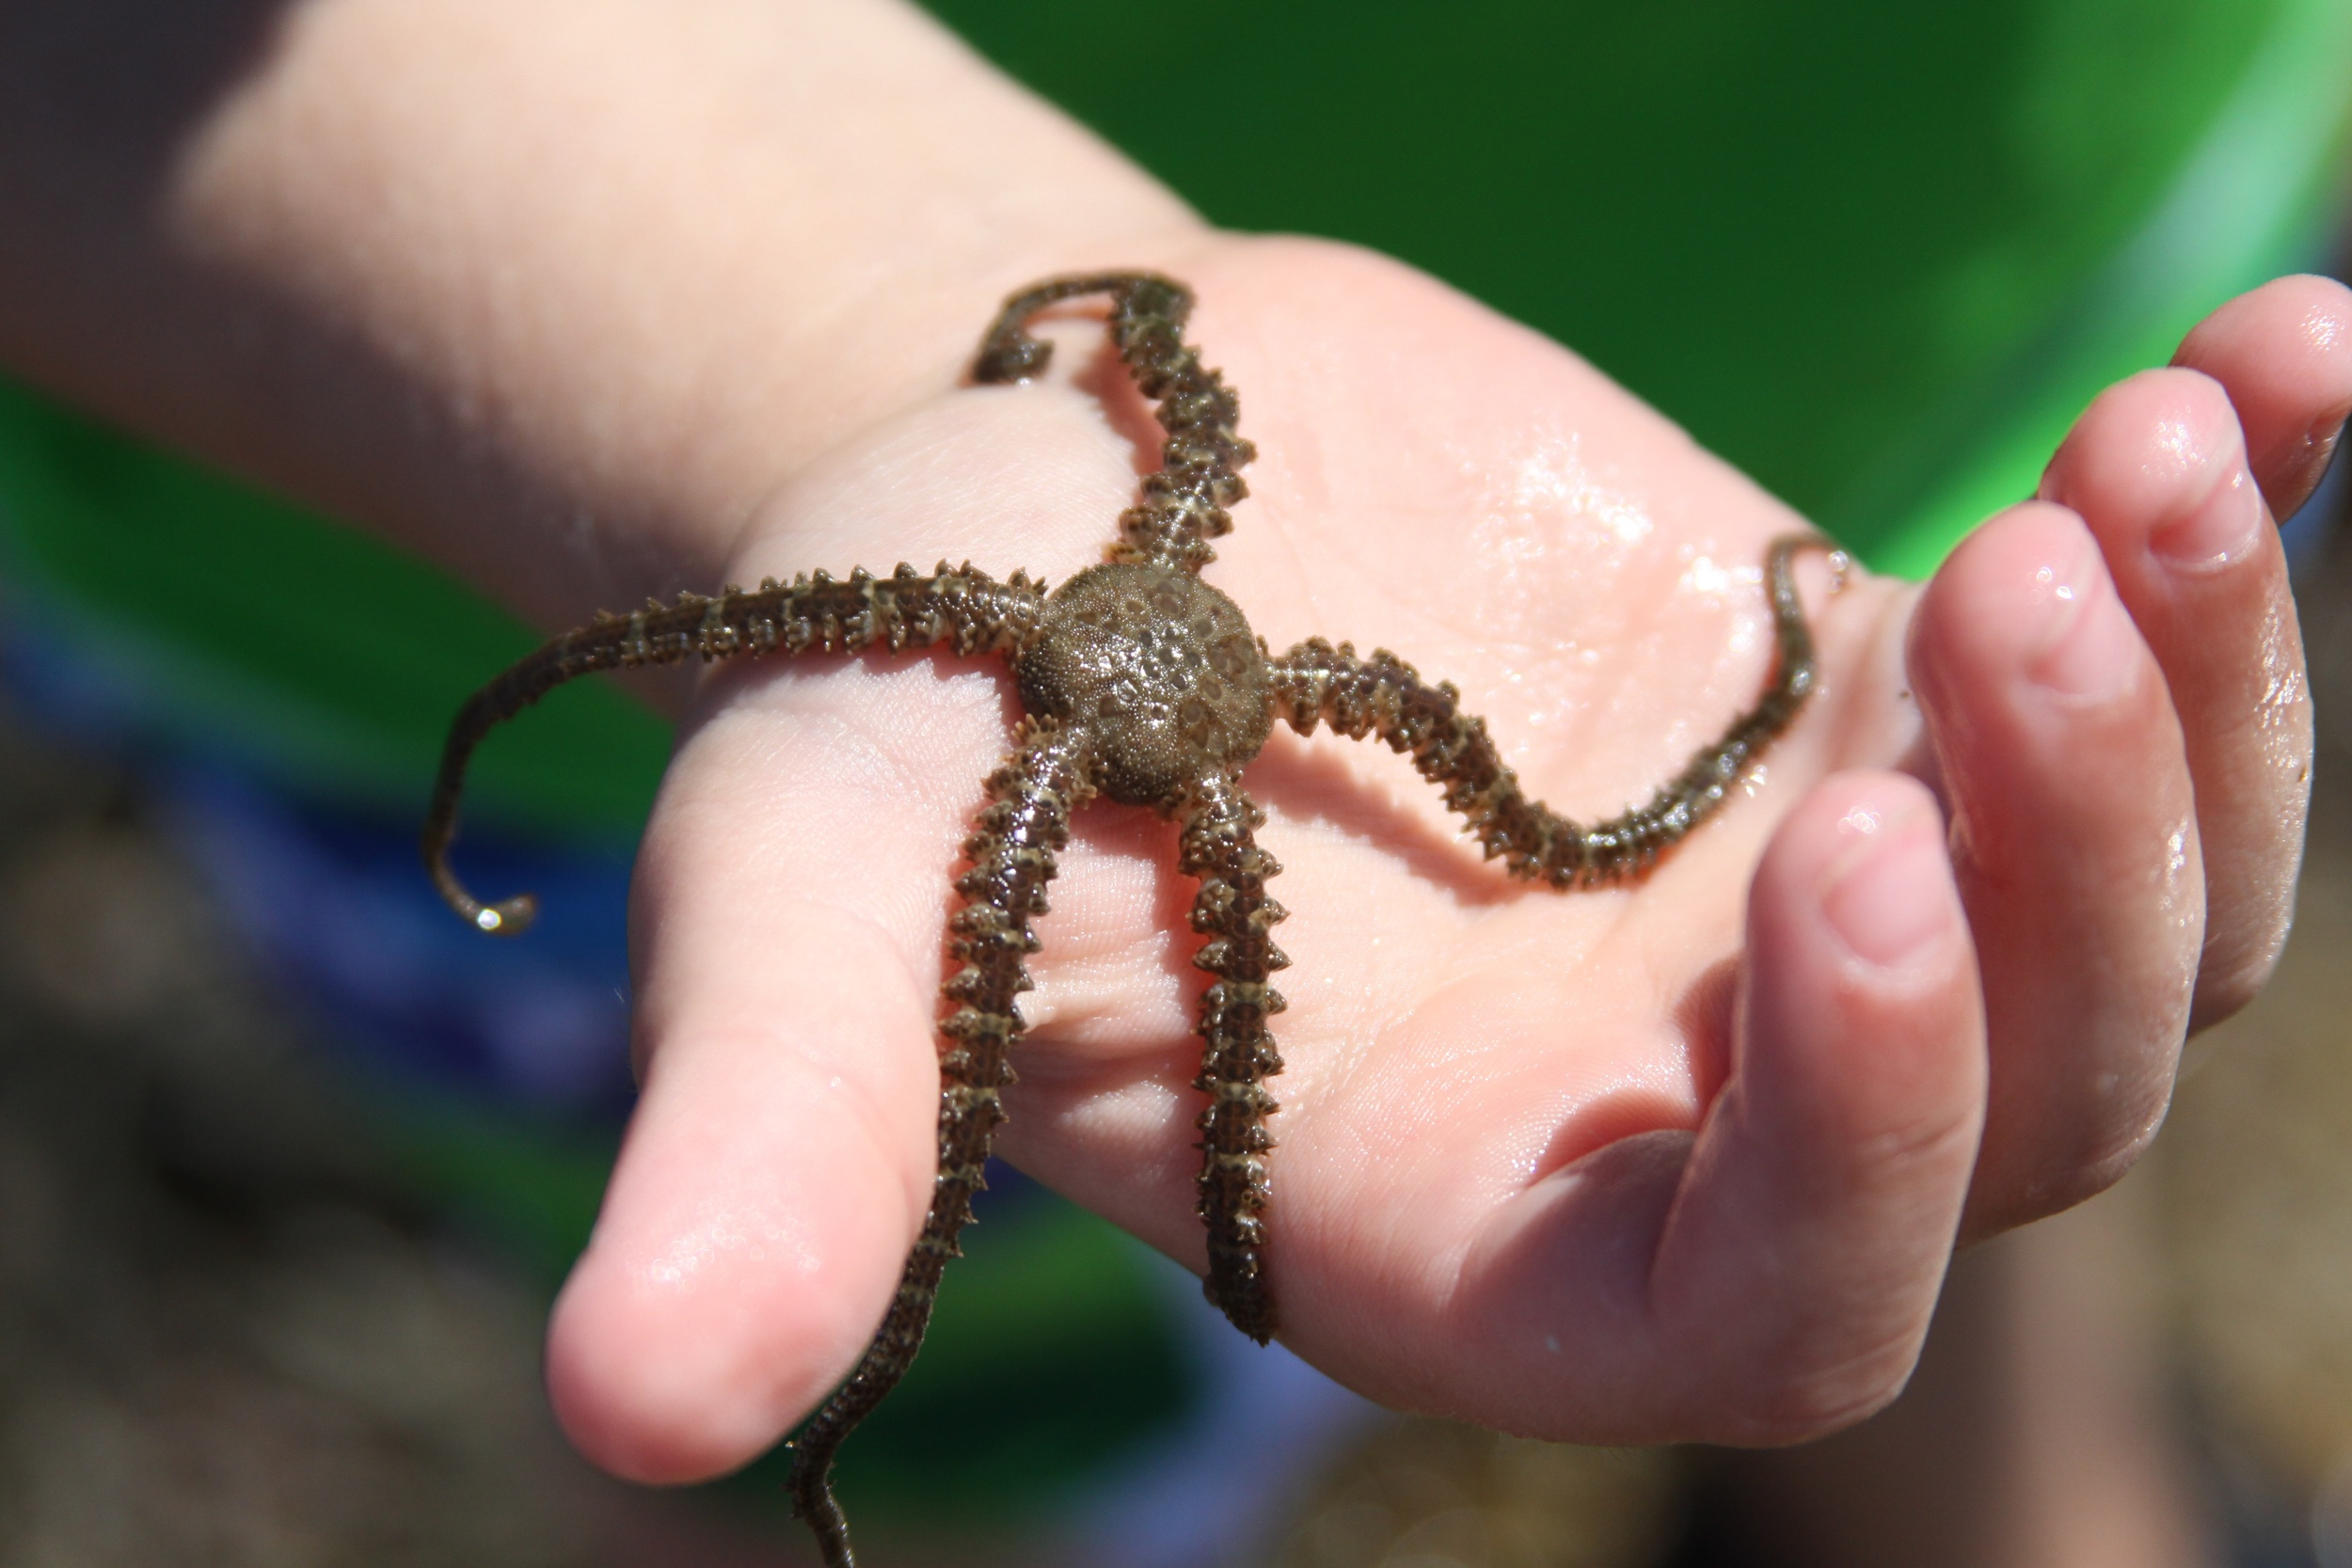 A brittle star that Dale's family found.